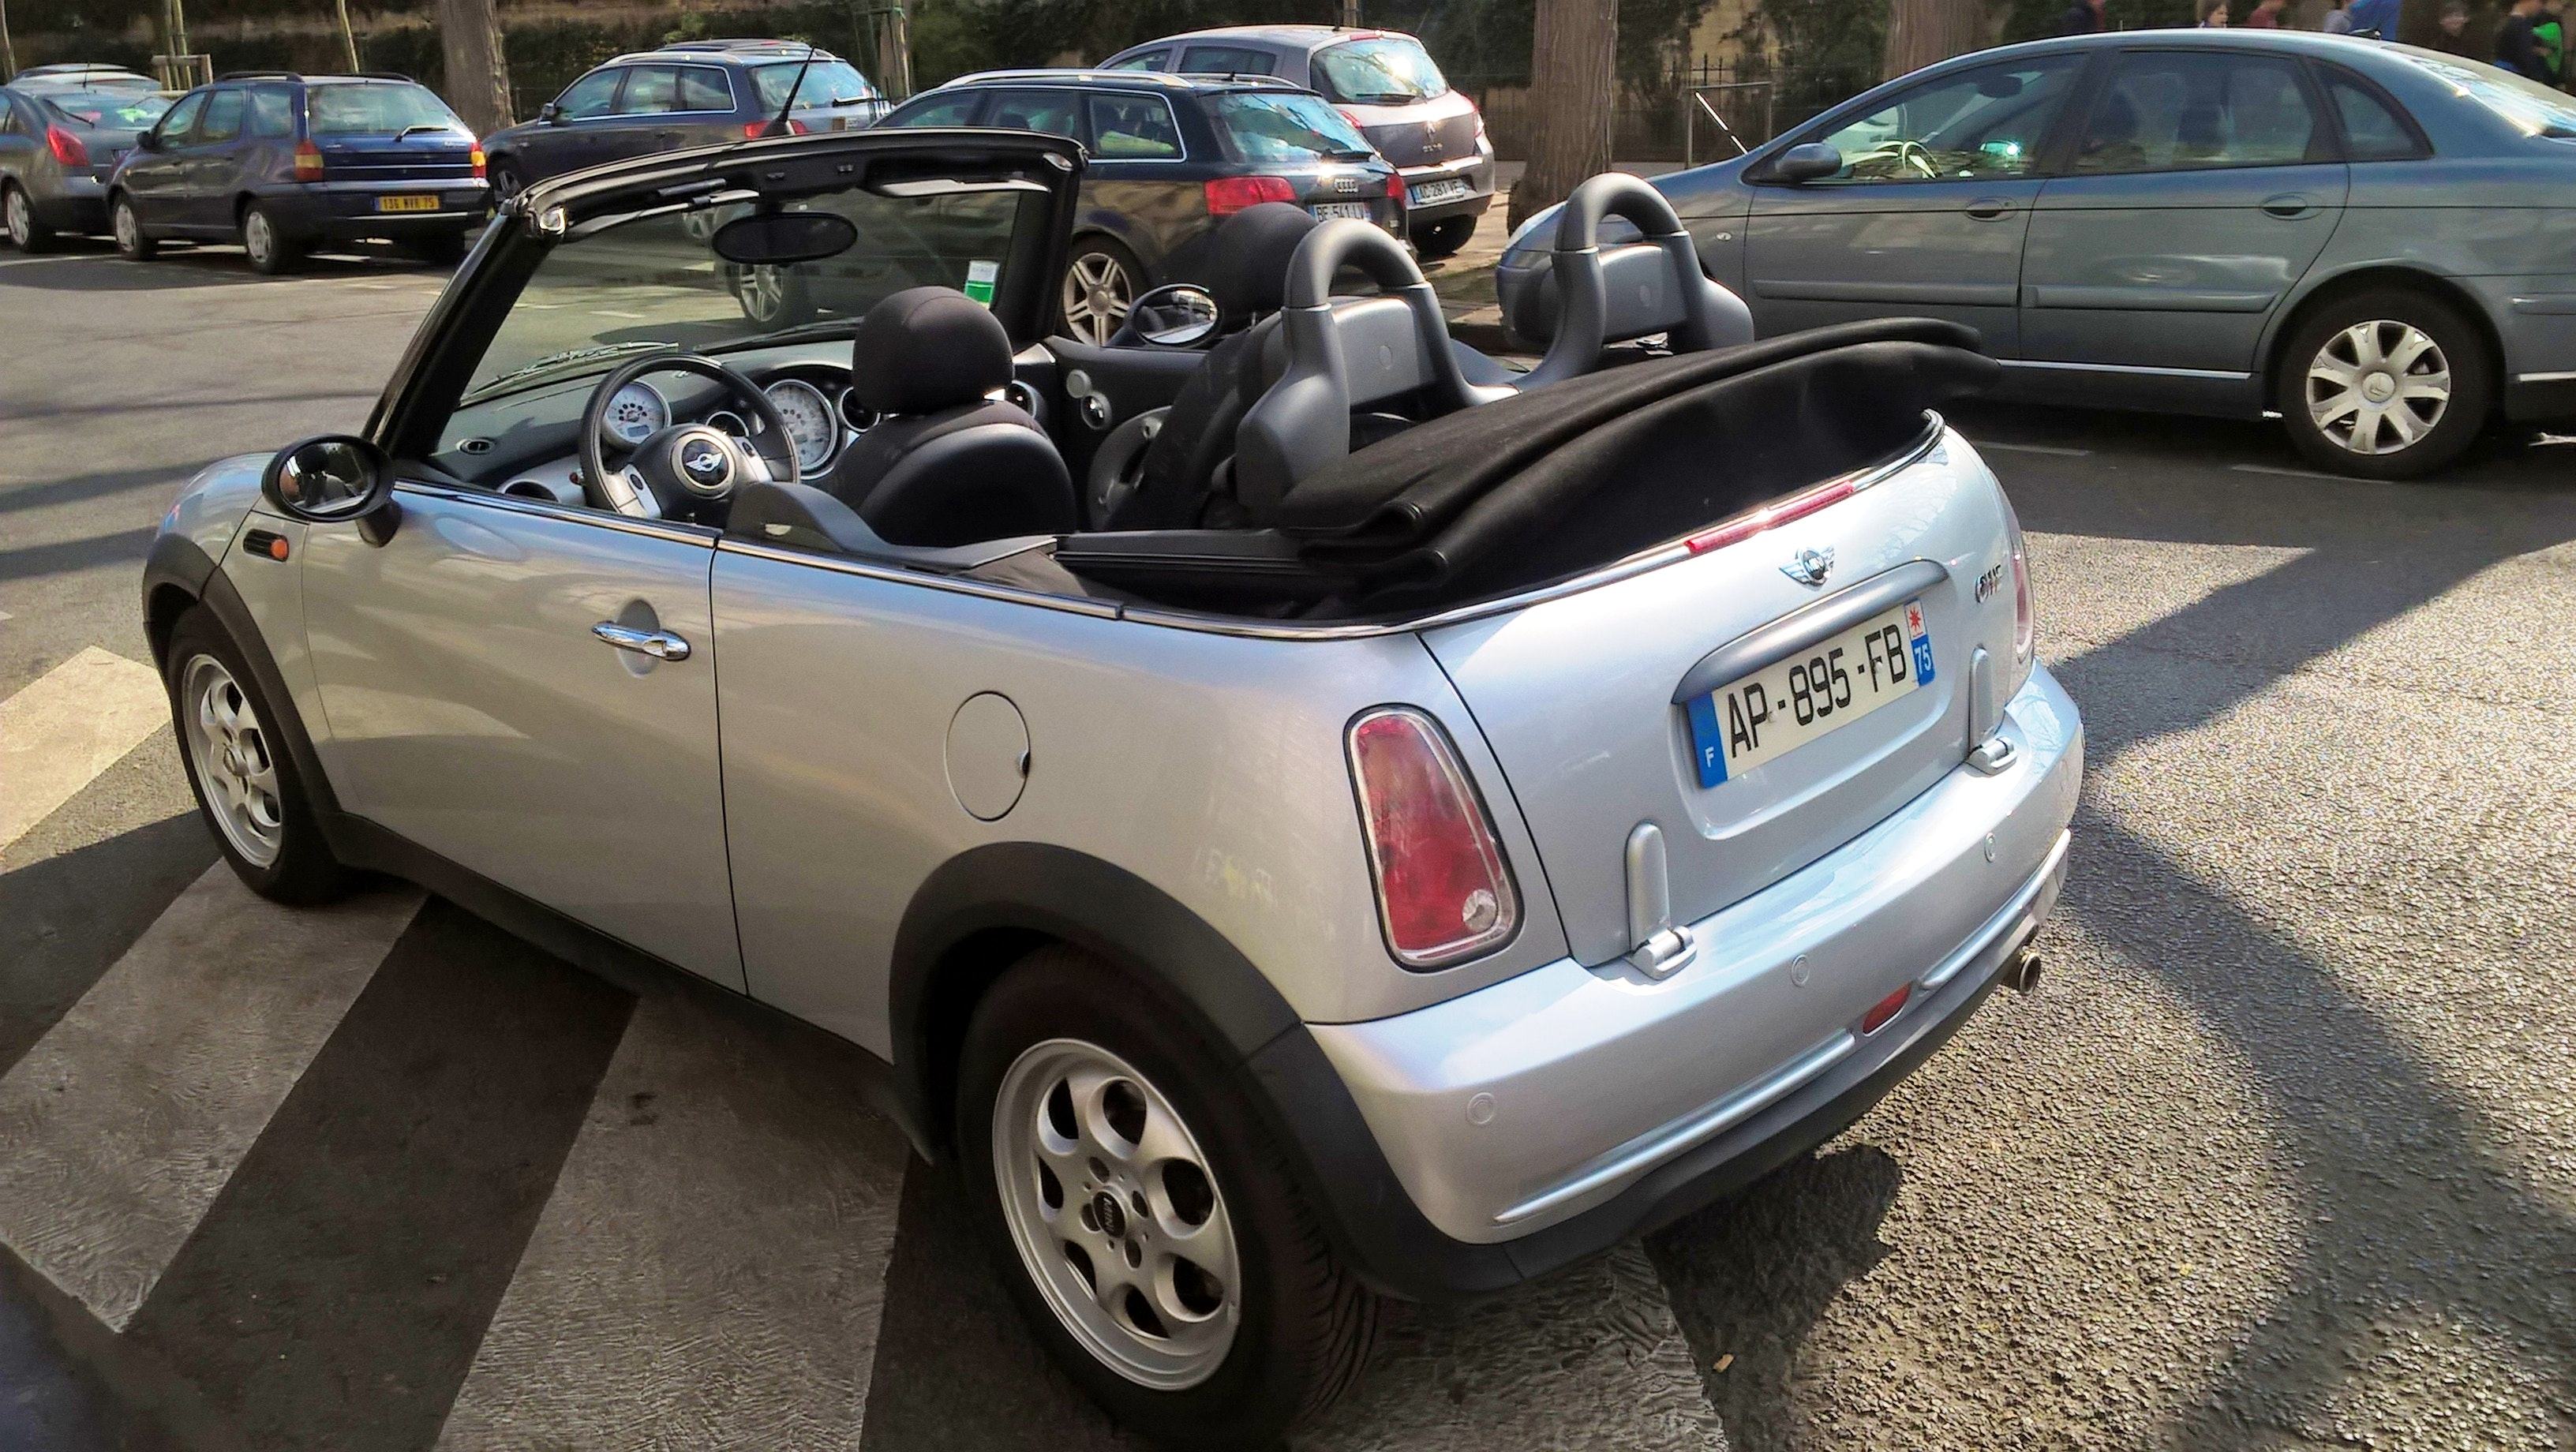 Mini Cabriolet 1.6 CLIM, 2005, Essence - Cabriolet Paris (75)